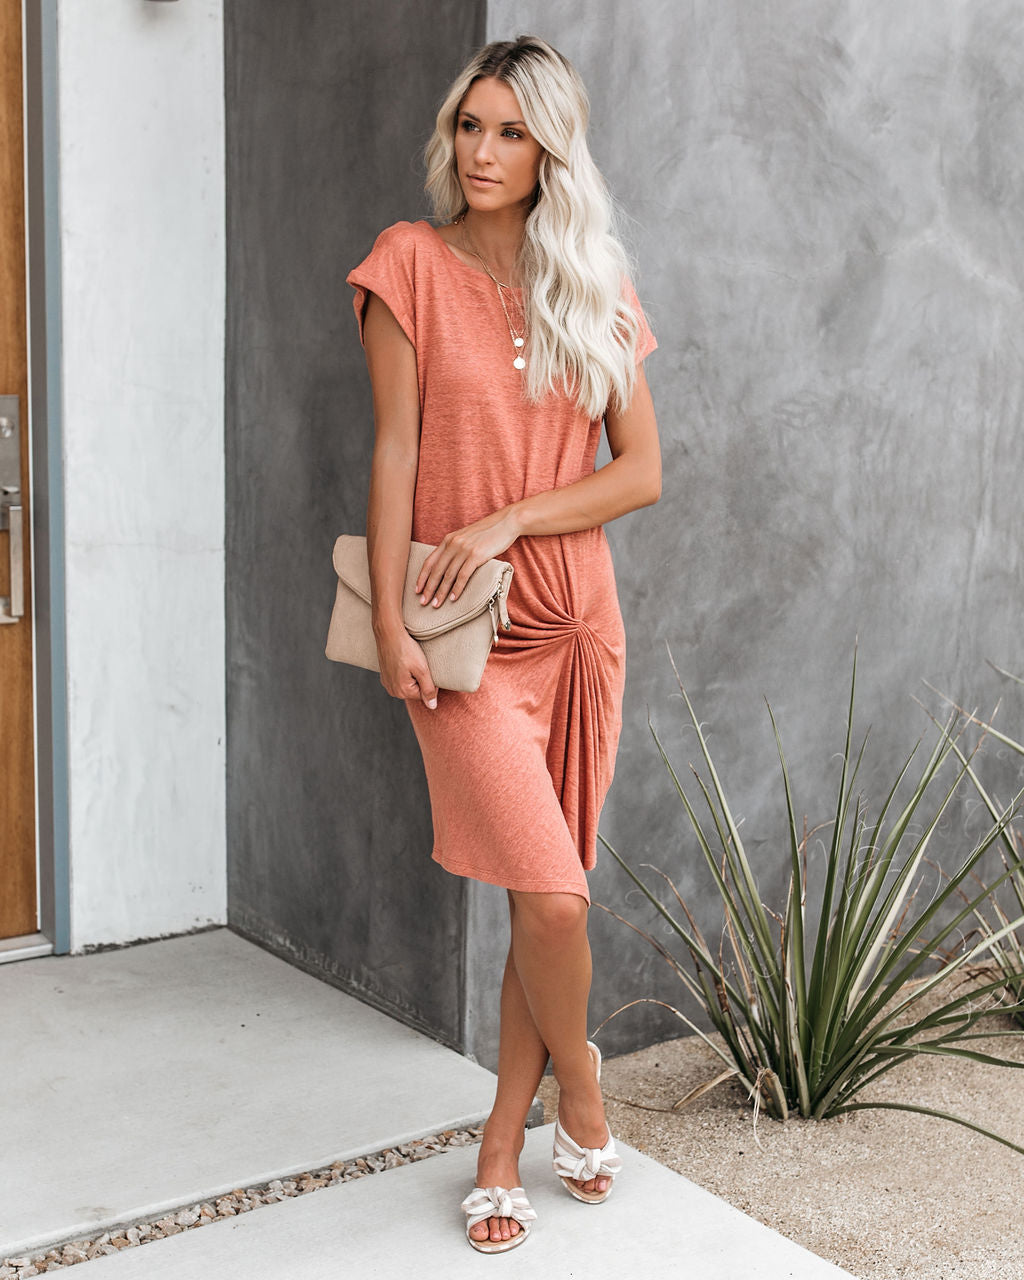 870cacfa Low Key Linen Twist T-Shirt Dress - Orange Pink – VICI